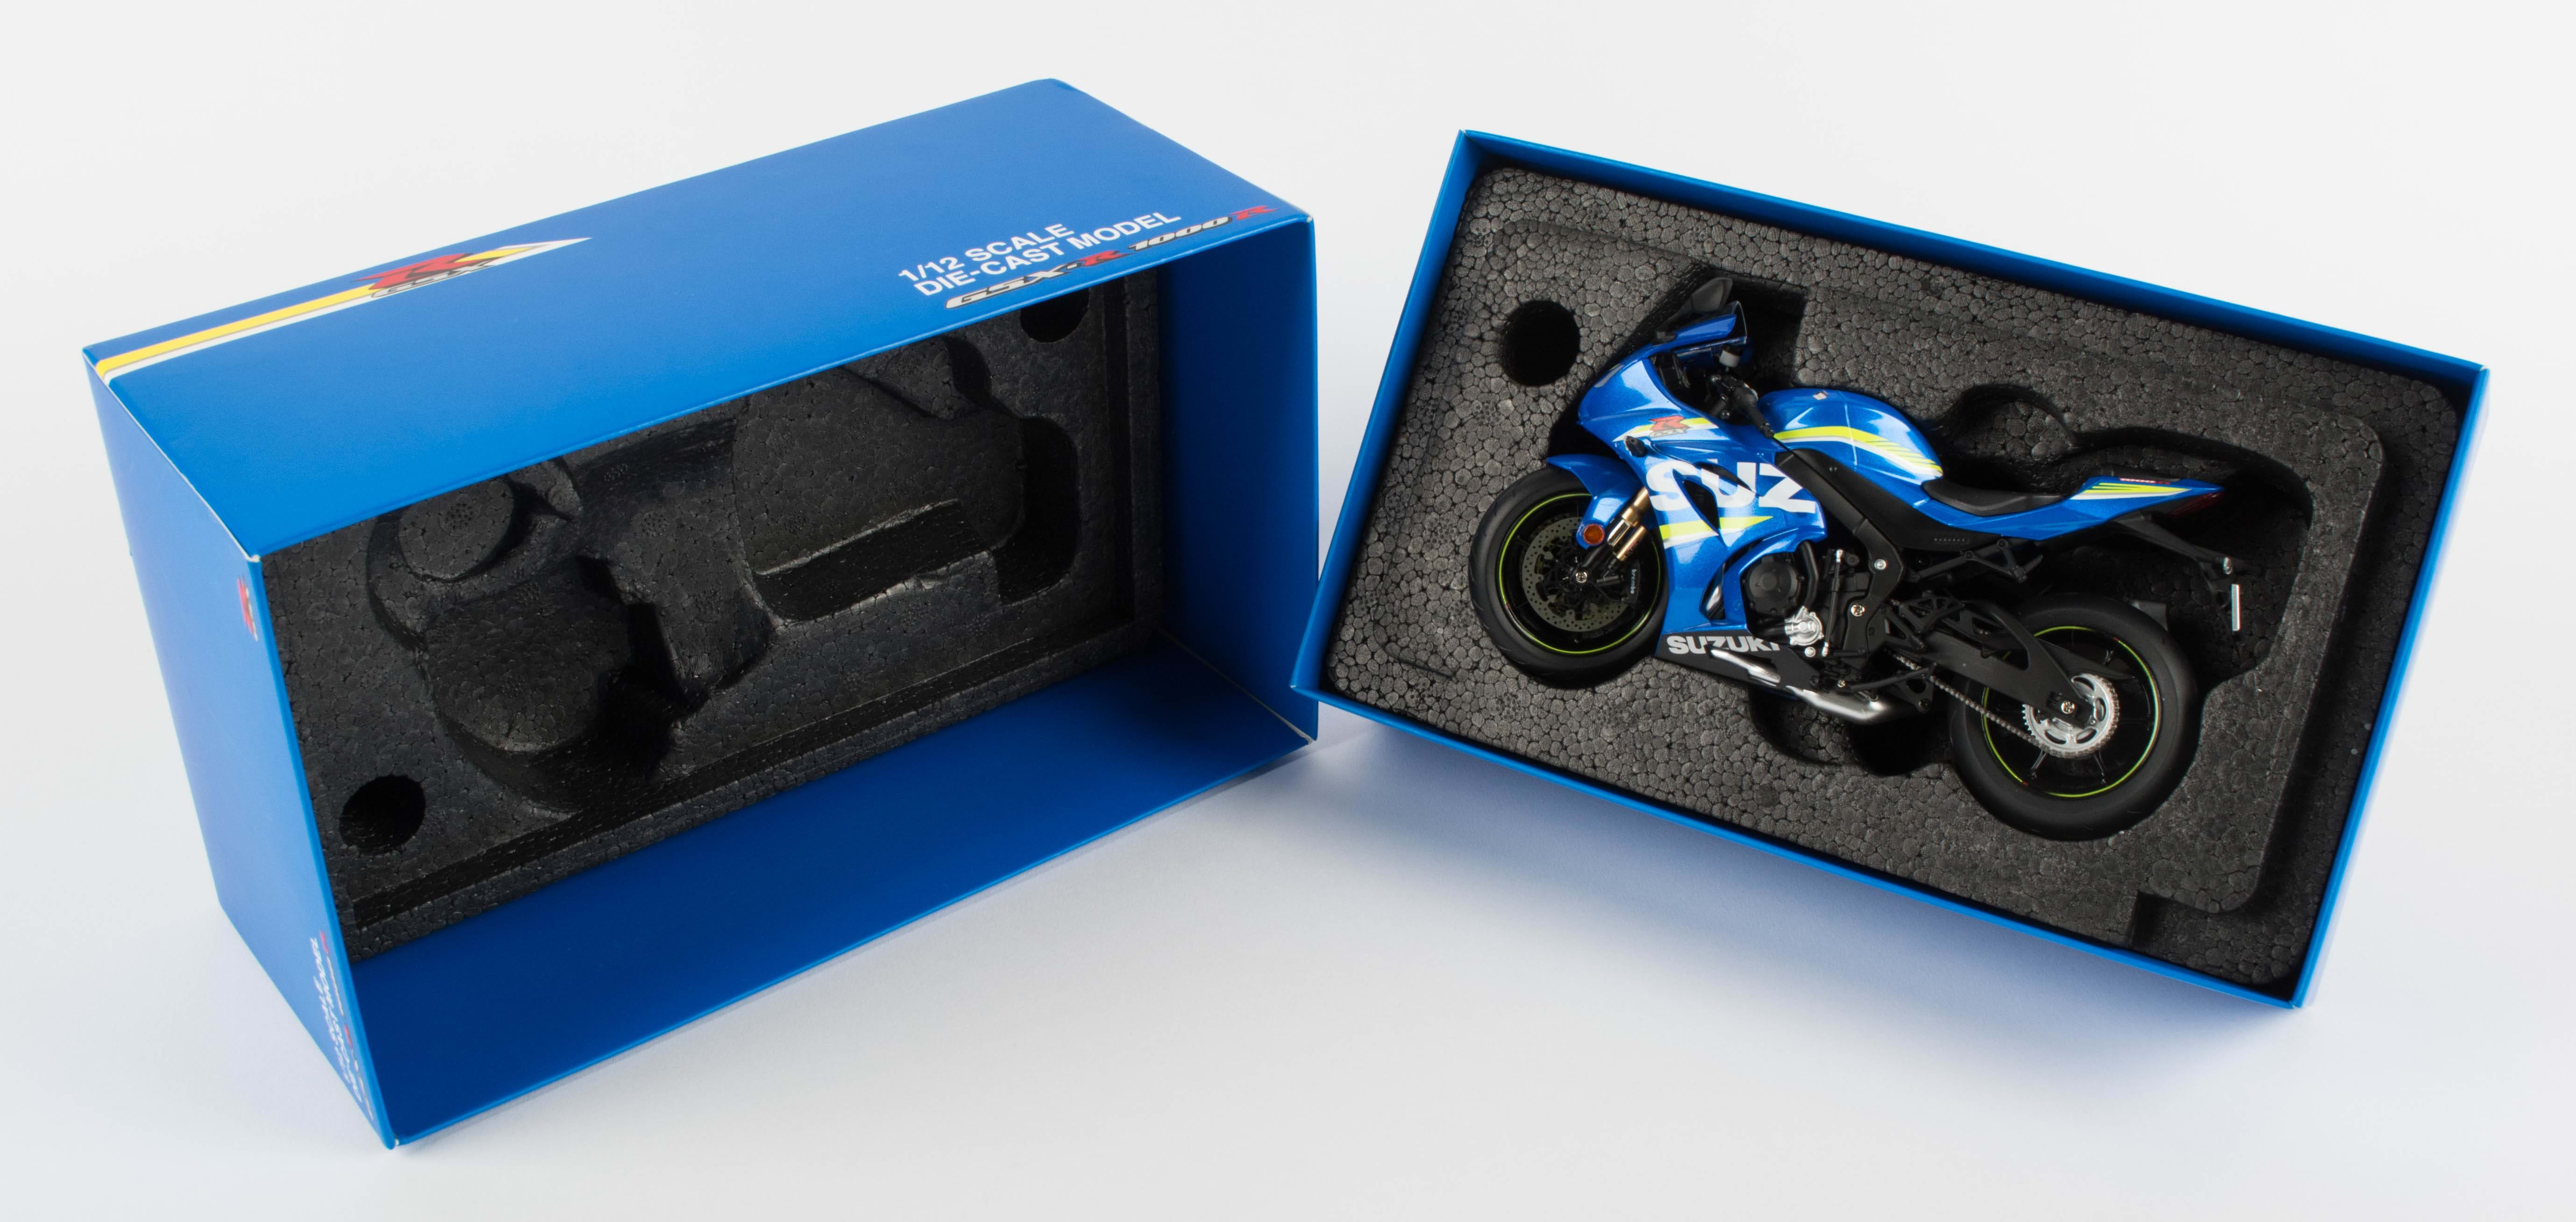 Suzuki GSX-R1000R motorbyke model packed in box